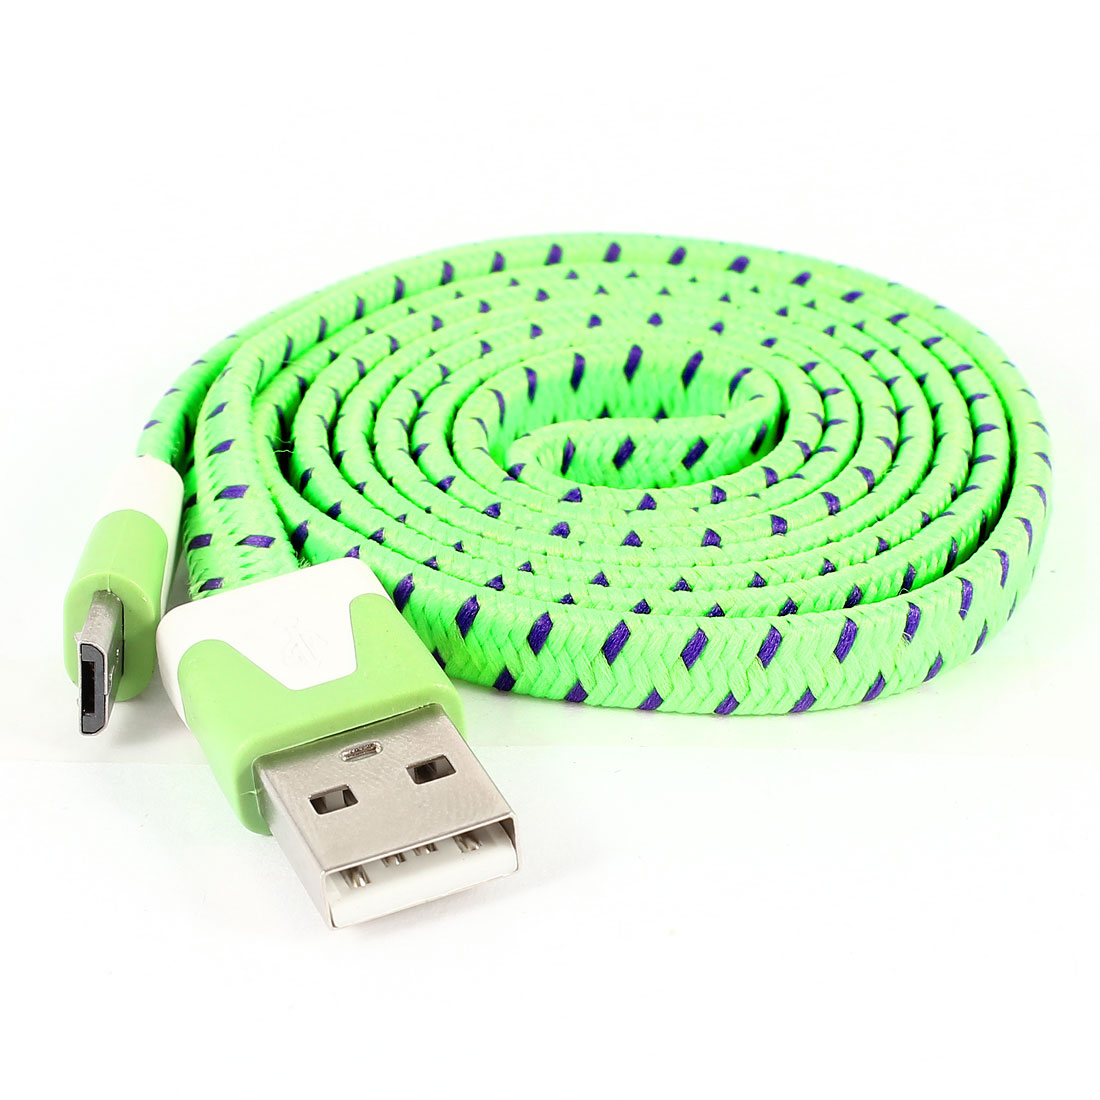 Green USB 2.0 Type A Male to Micro USB Male Data Transfer Cable 1M 3ft